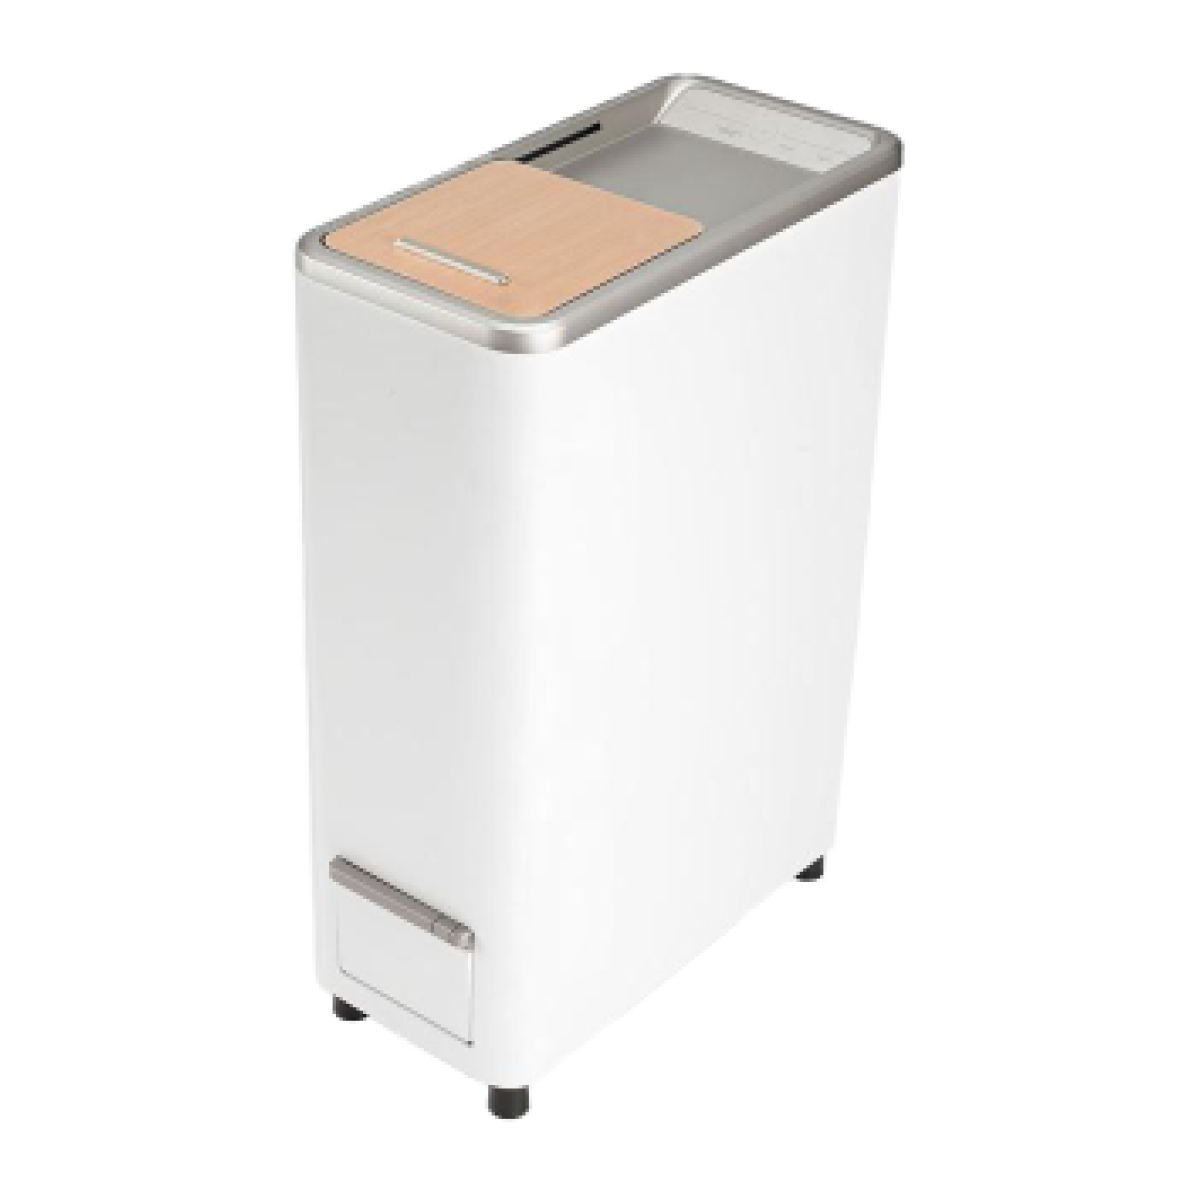 WLabs Innovations Food Recycler and Composter